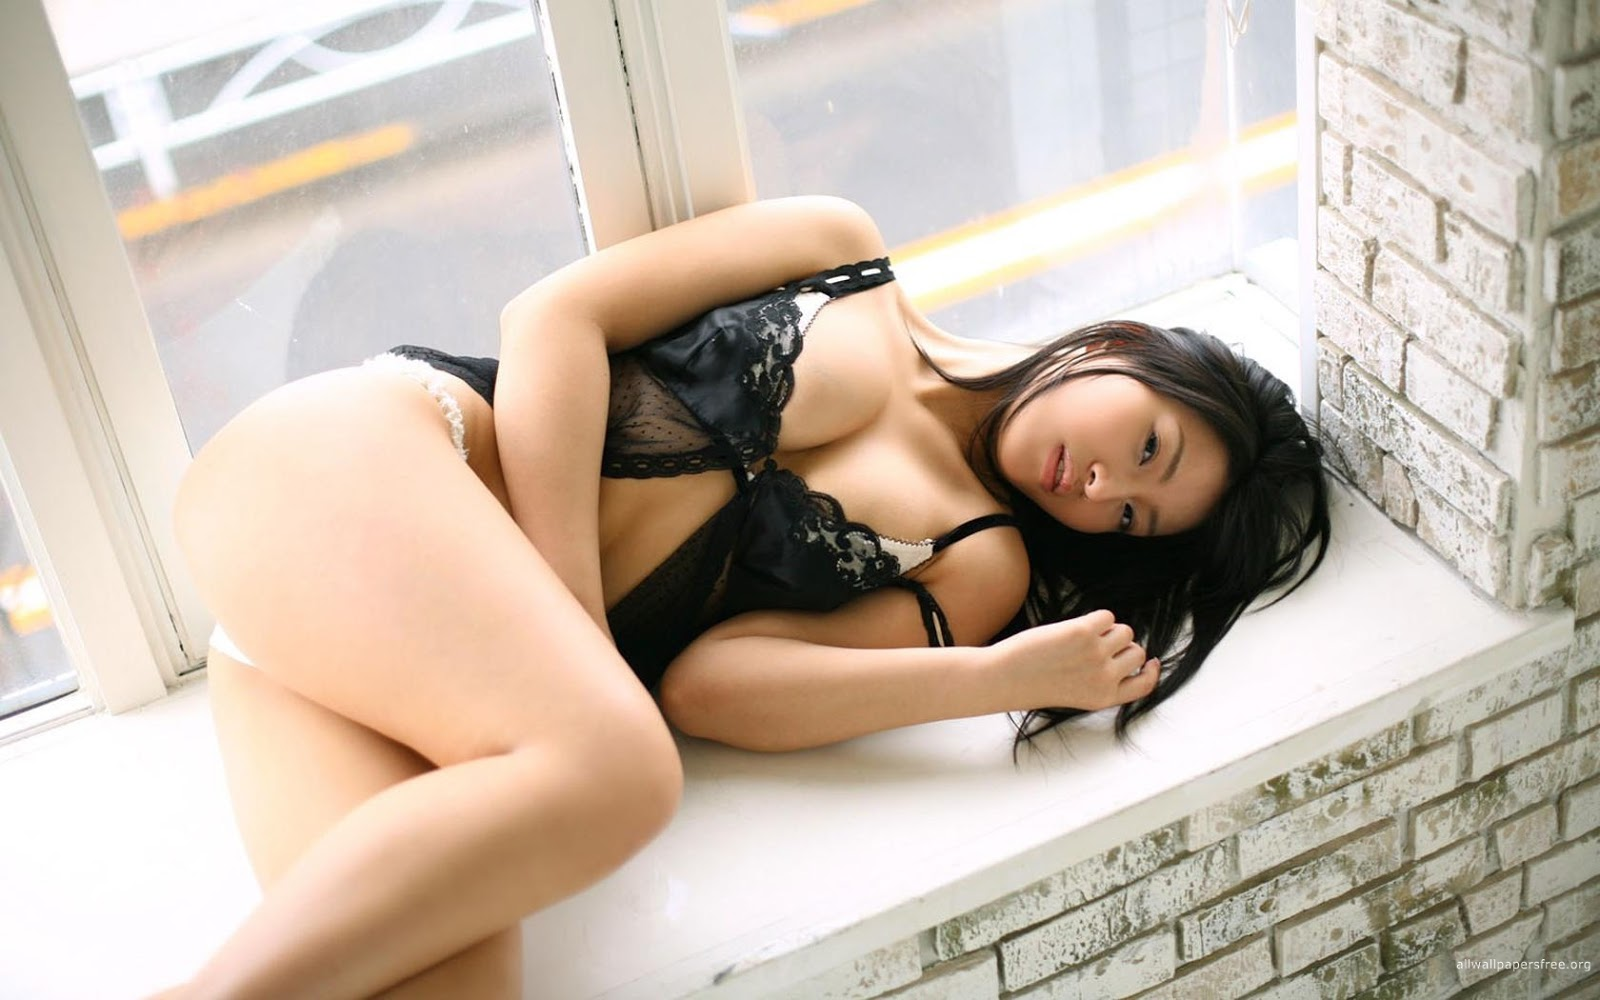 Sexy dealer sexy girl online casino malaysia asia gaming actress event vincitore